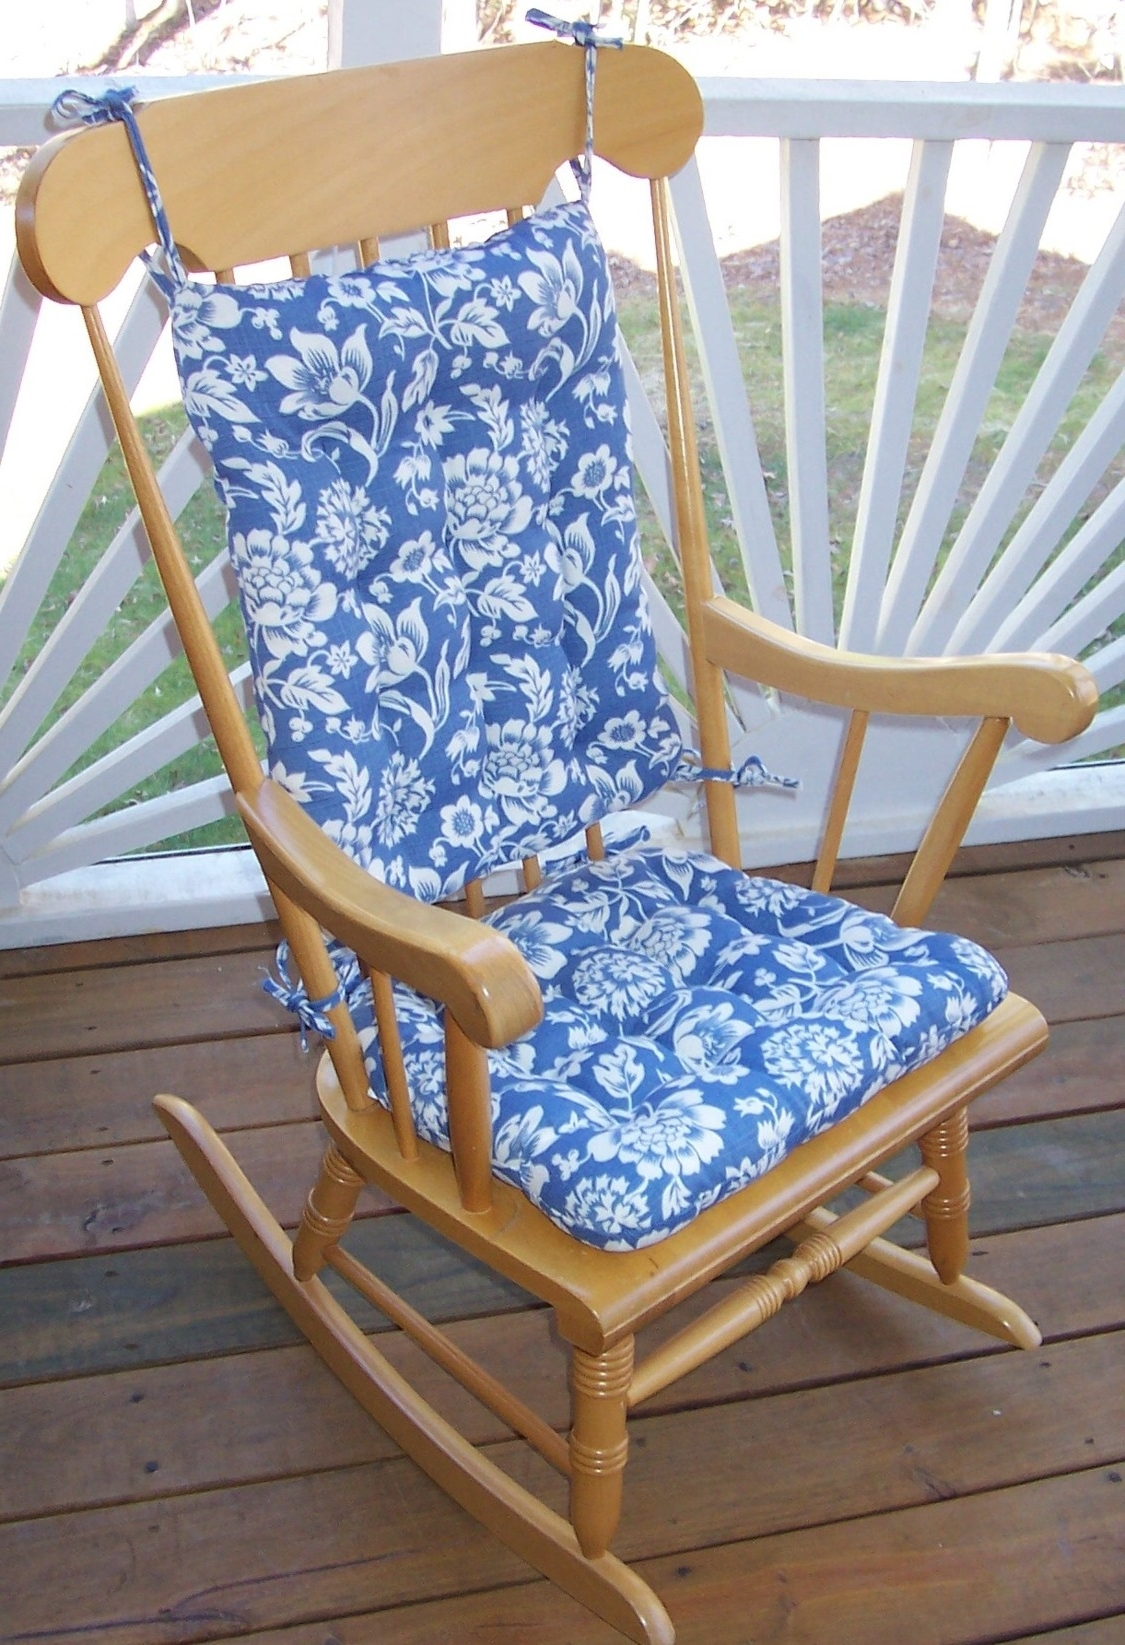 Fashionable Outdoor Rocking Chair Cushions Pattern : Beautiful Outdoor Rocking With Regard To Rocking Chair Cushions For Outdoor (View 8 of 15)